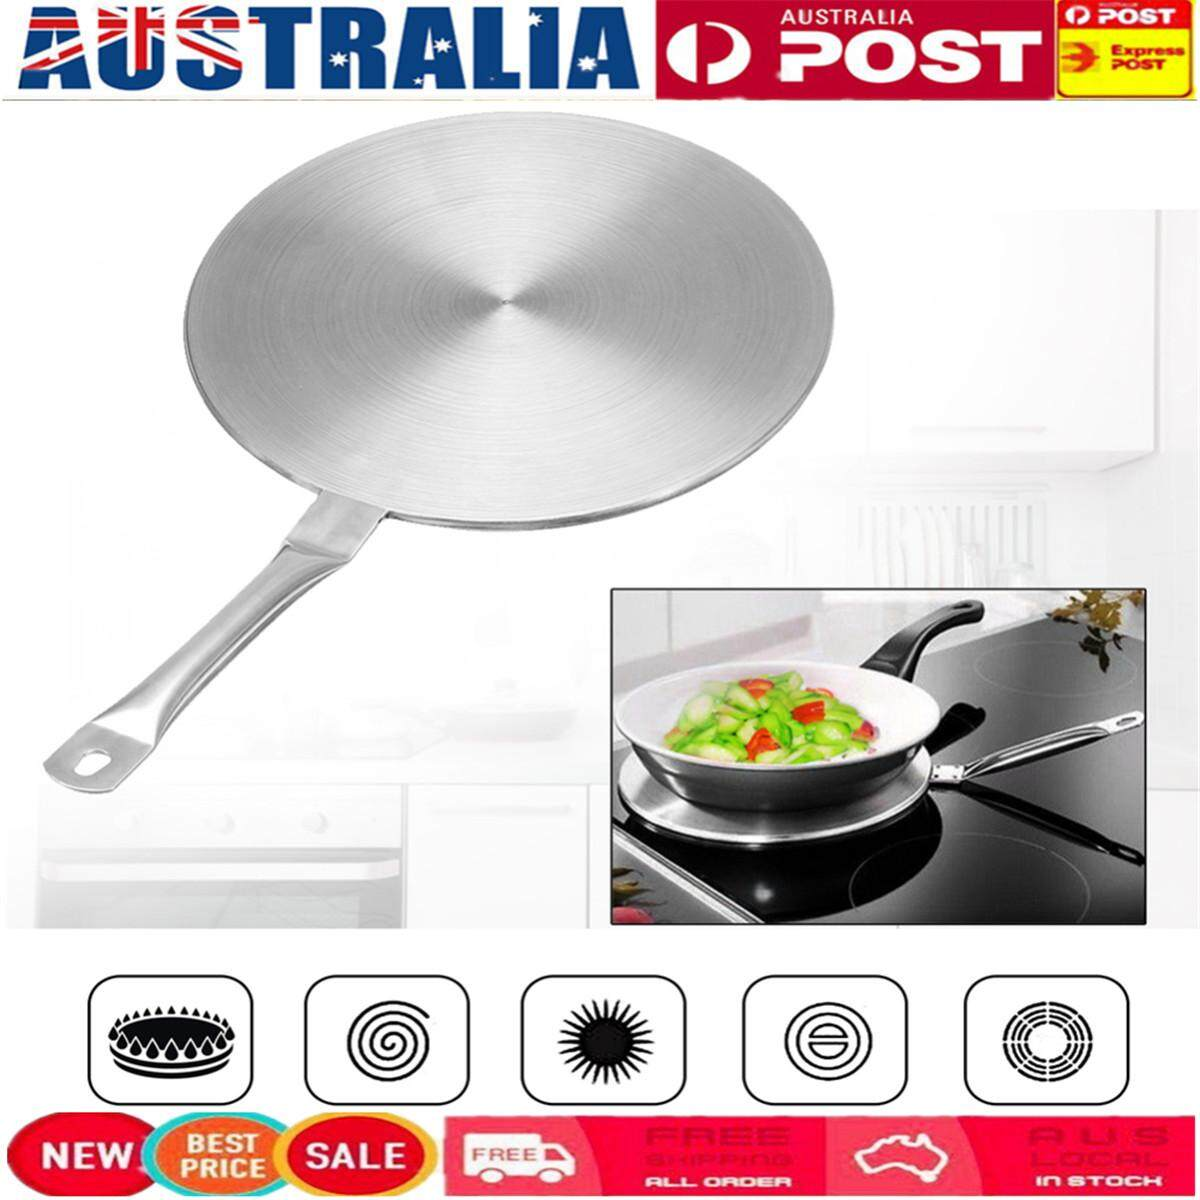 Bảng giá 22cm Diameter Stainless Steel Induction Cooktop Converter Disk Plate Cookware Điện máy Pico